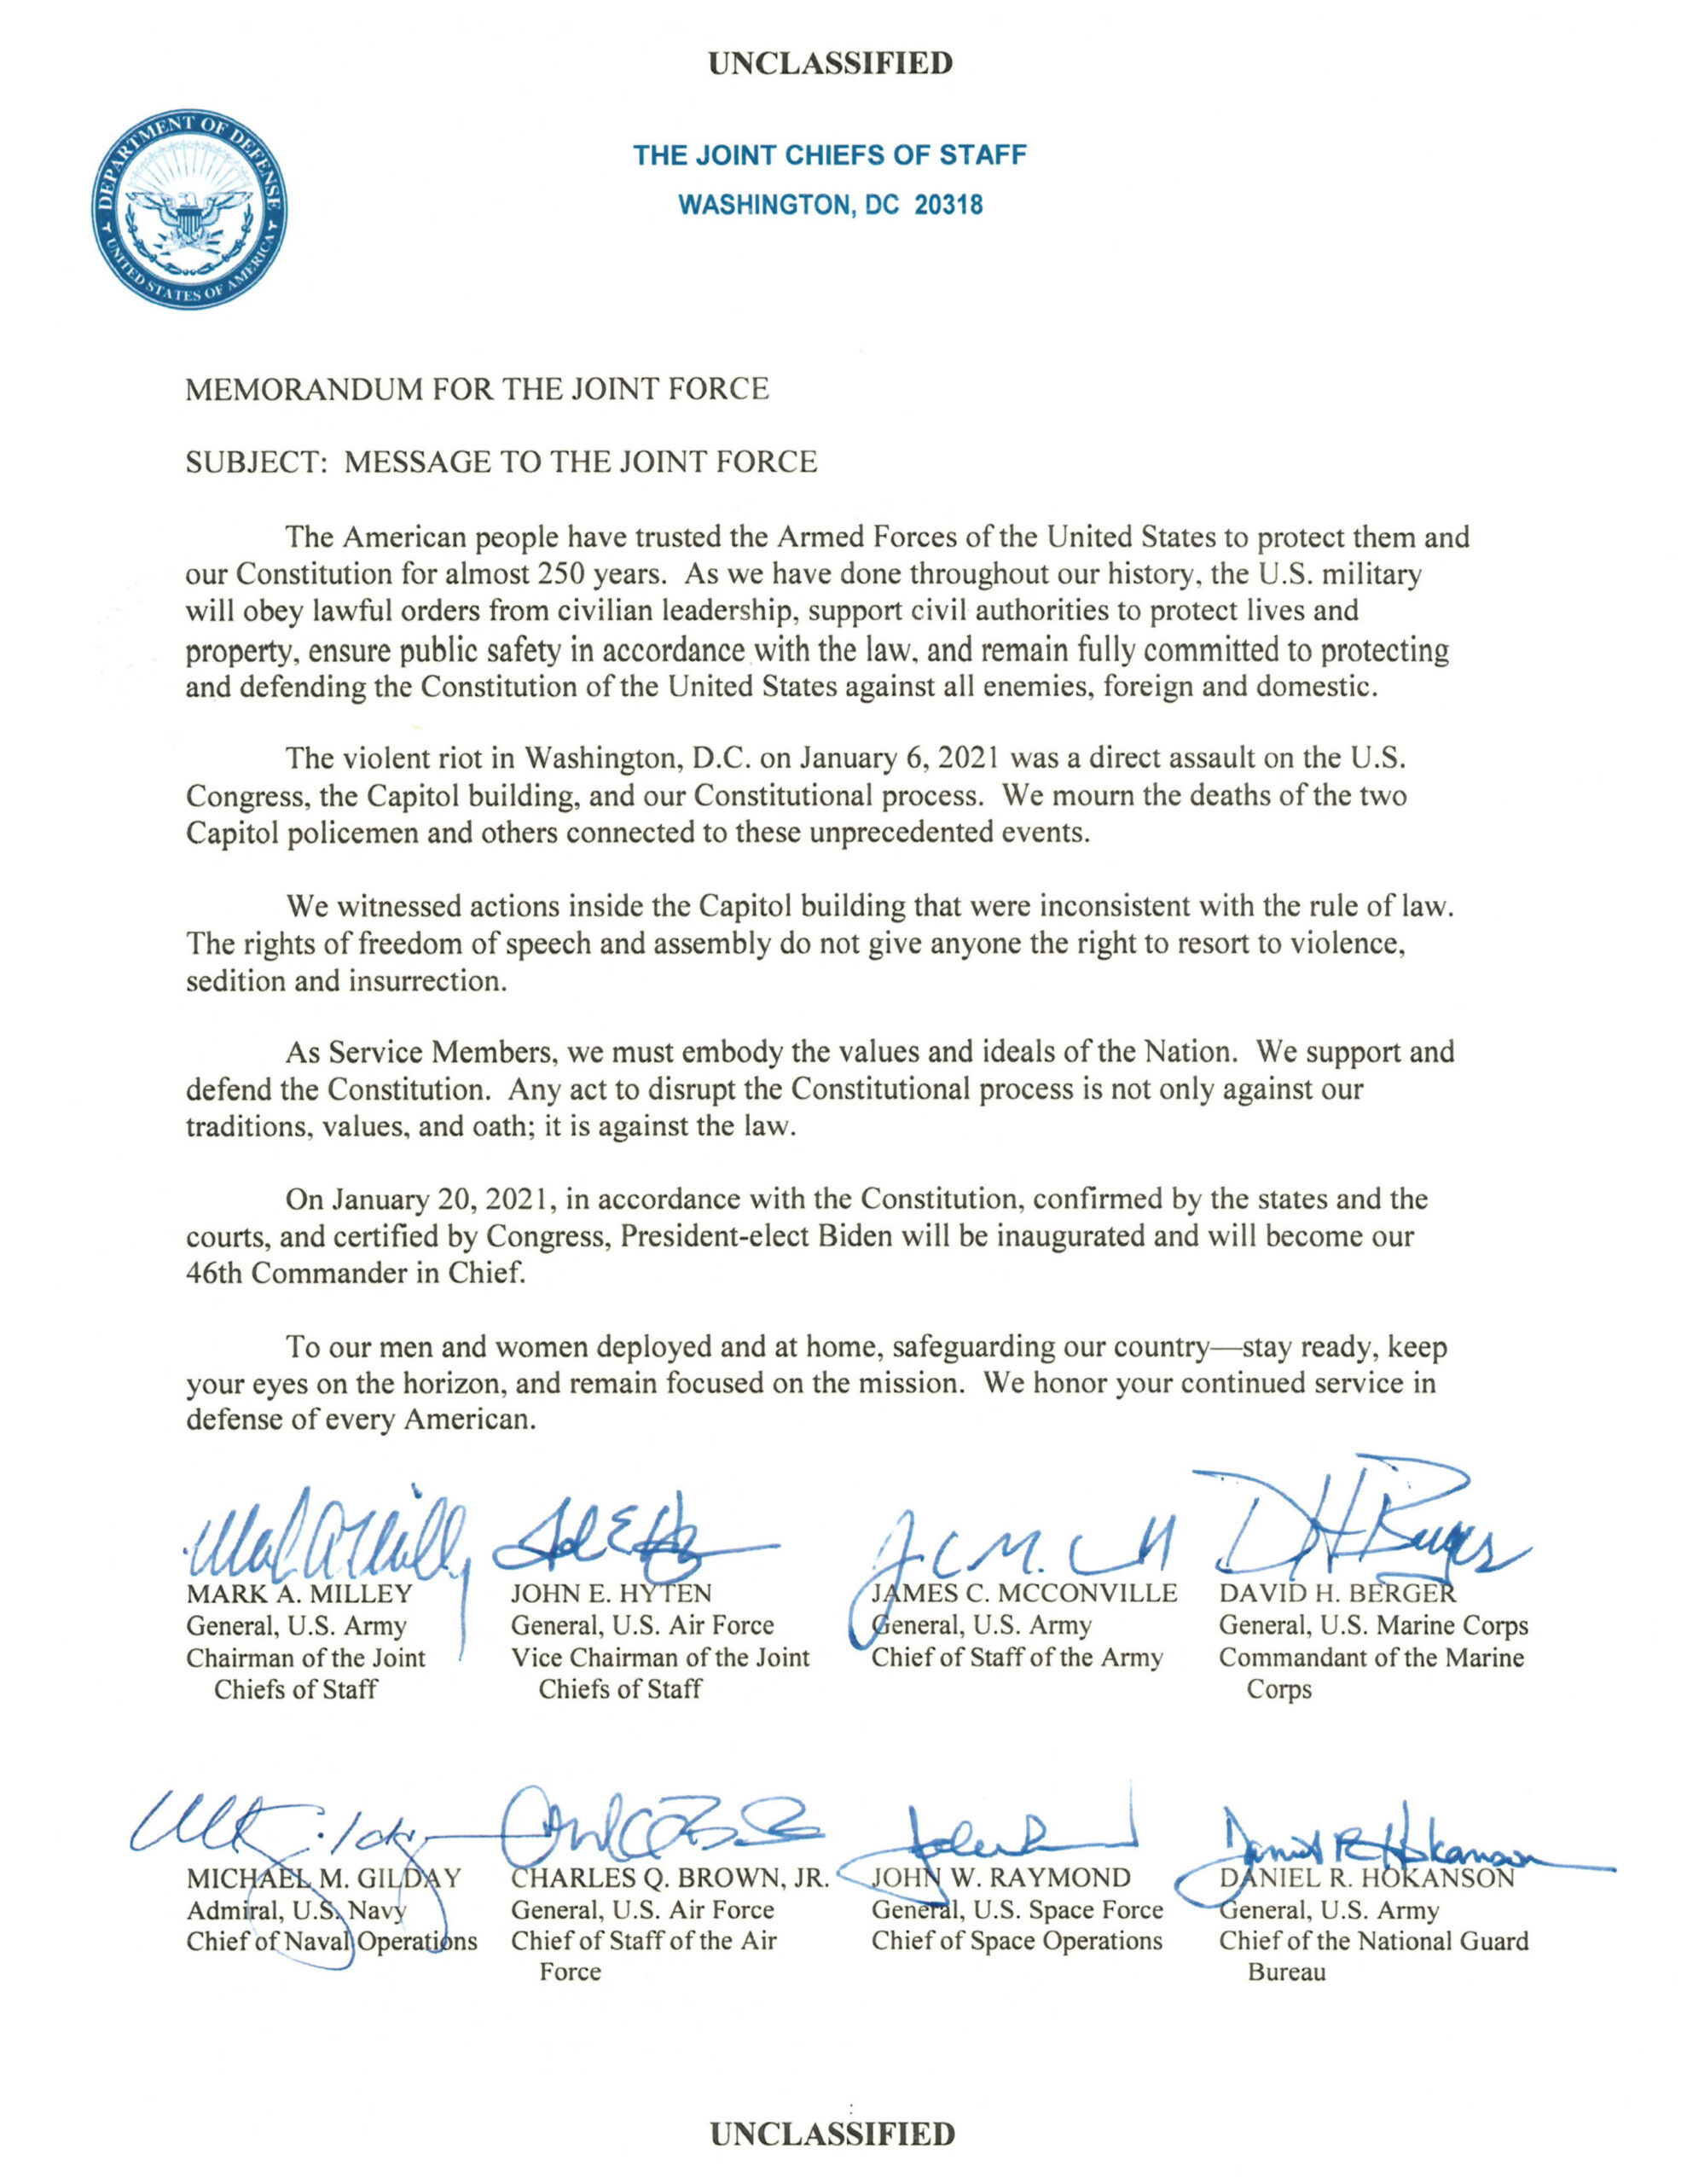 Letter from Joint Chiefs of Staff, US Military